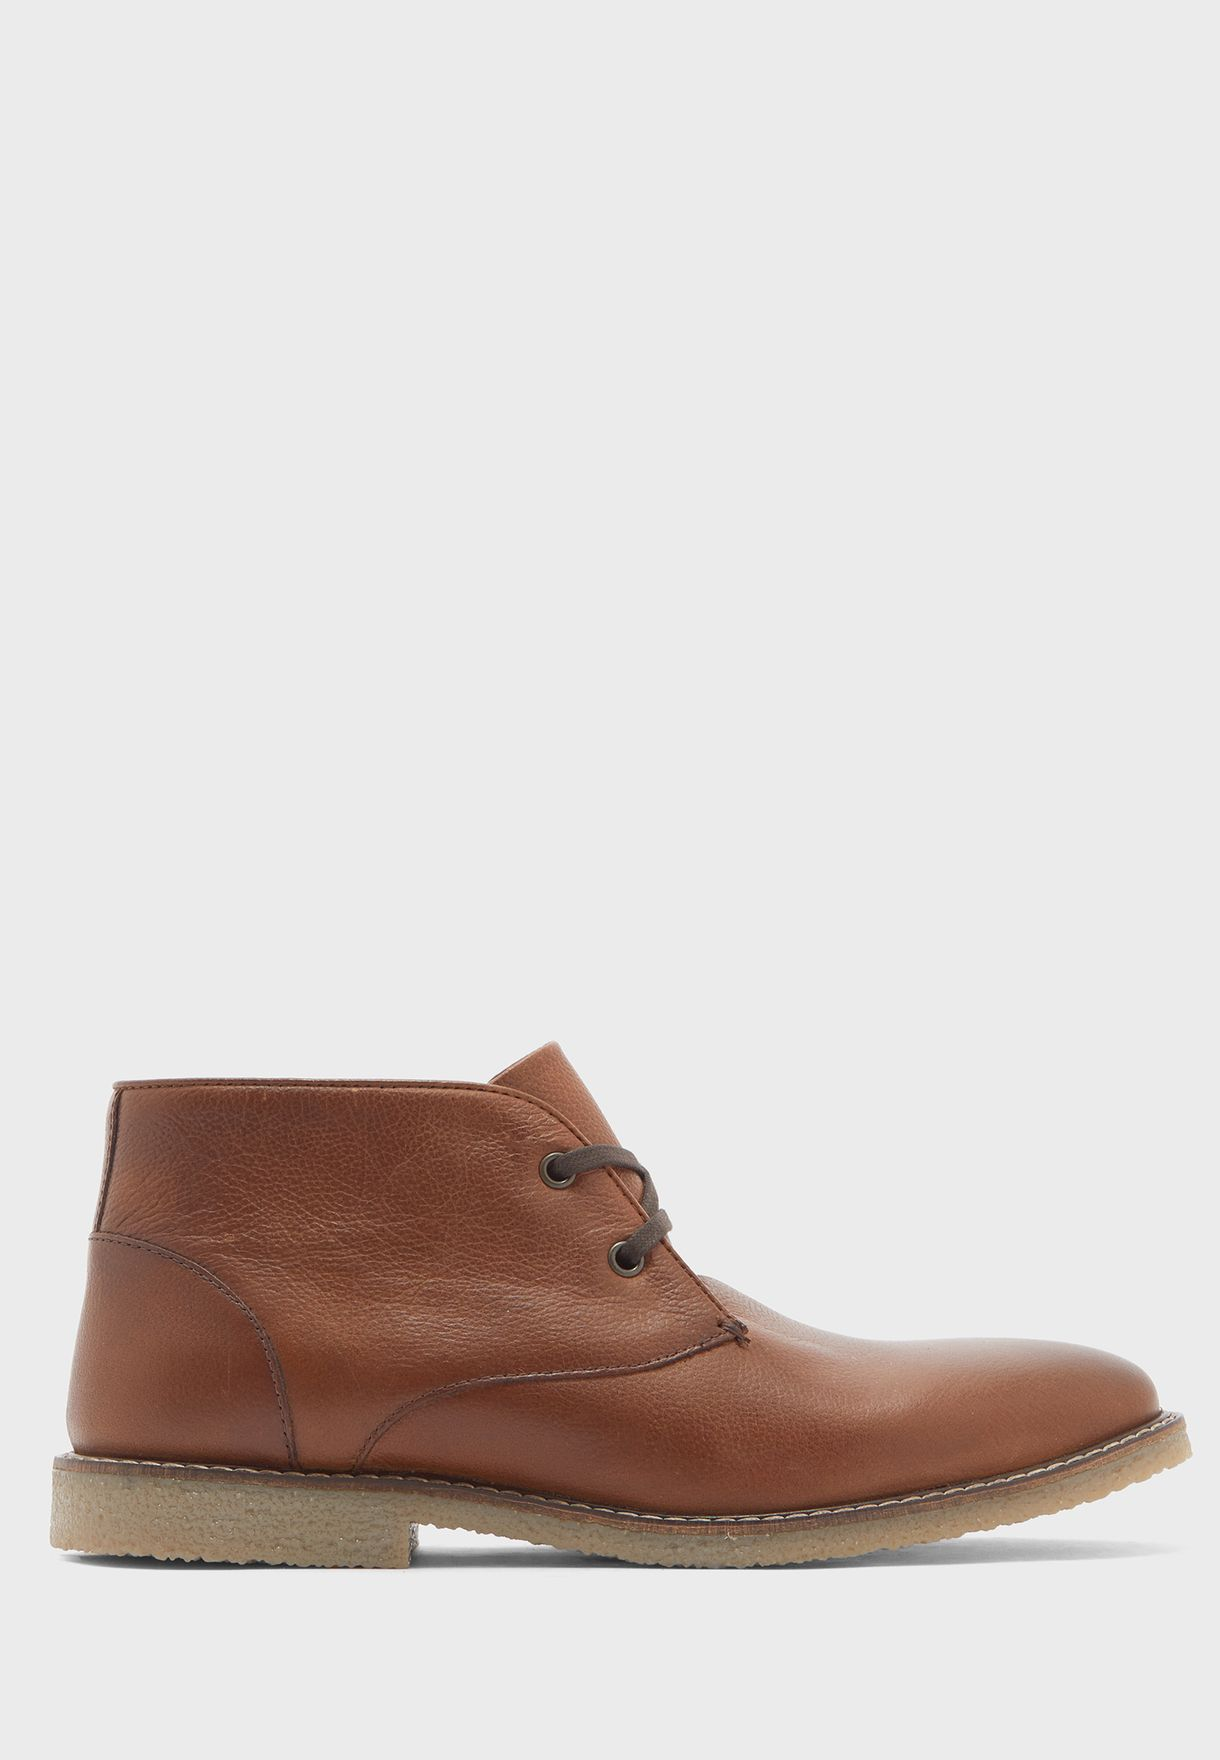 Genuine Leather Chukka Boots